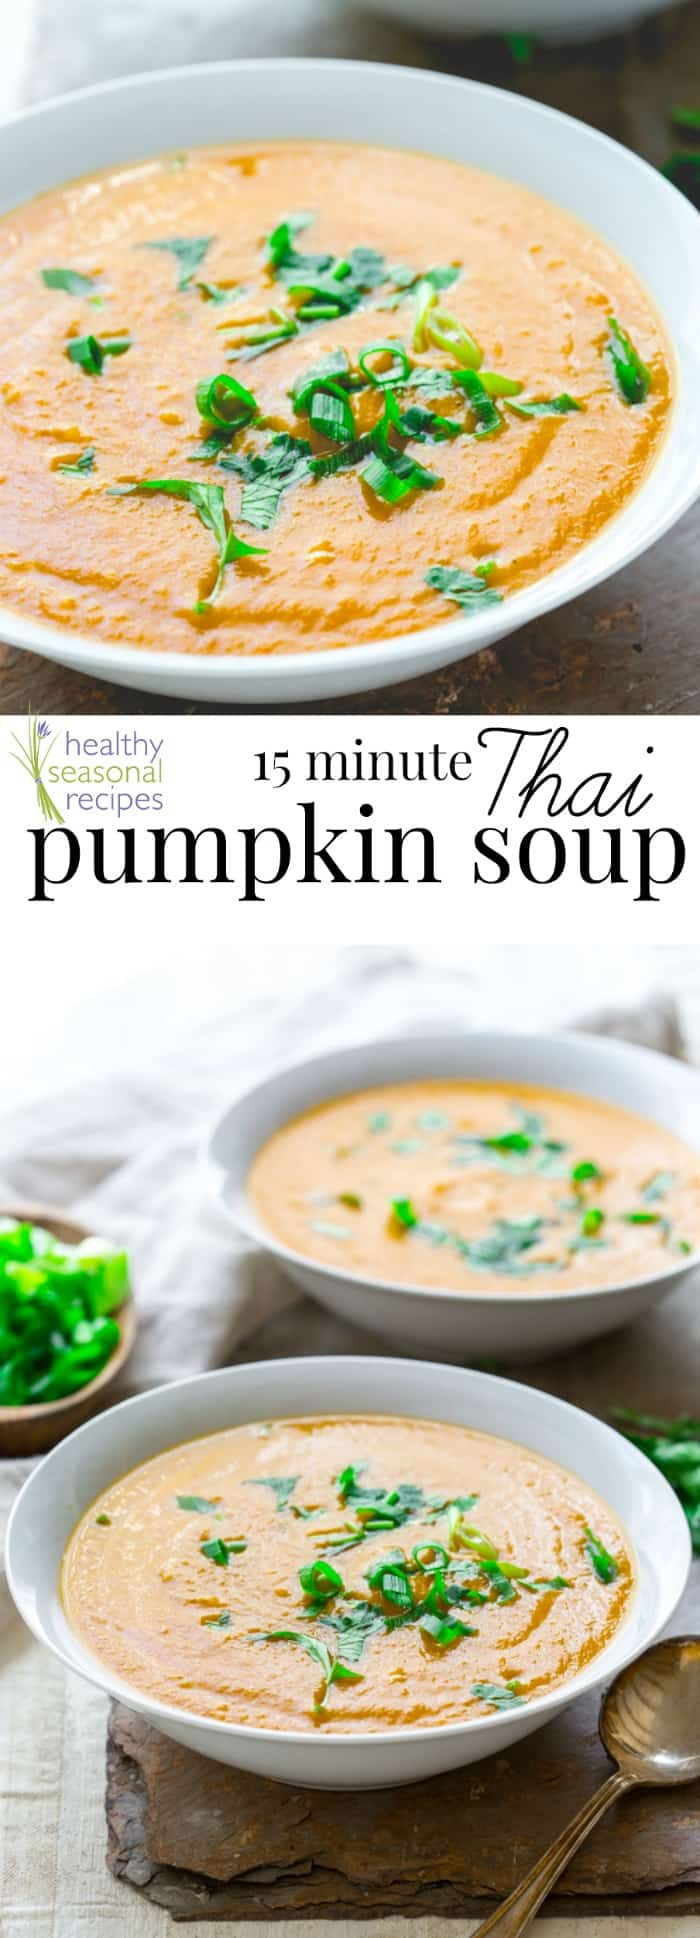 A bowl of Thai pumpkin soup photo collage with text